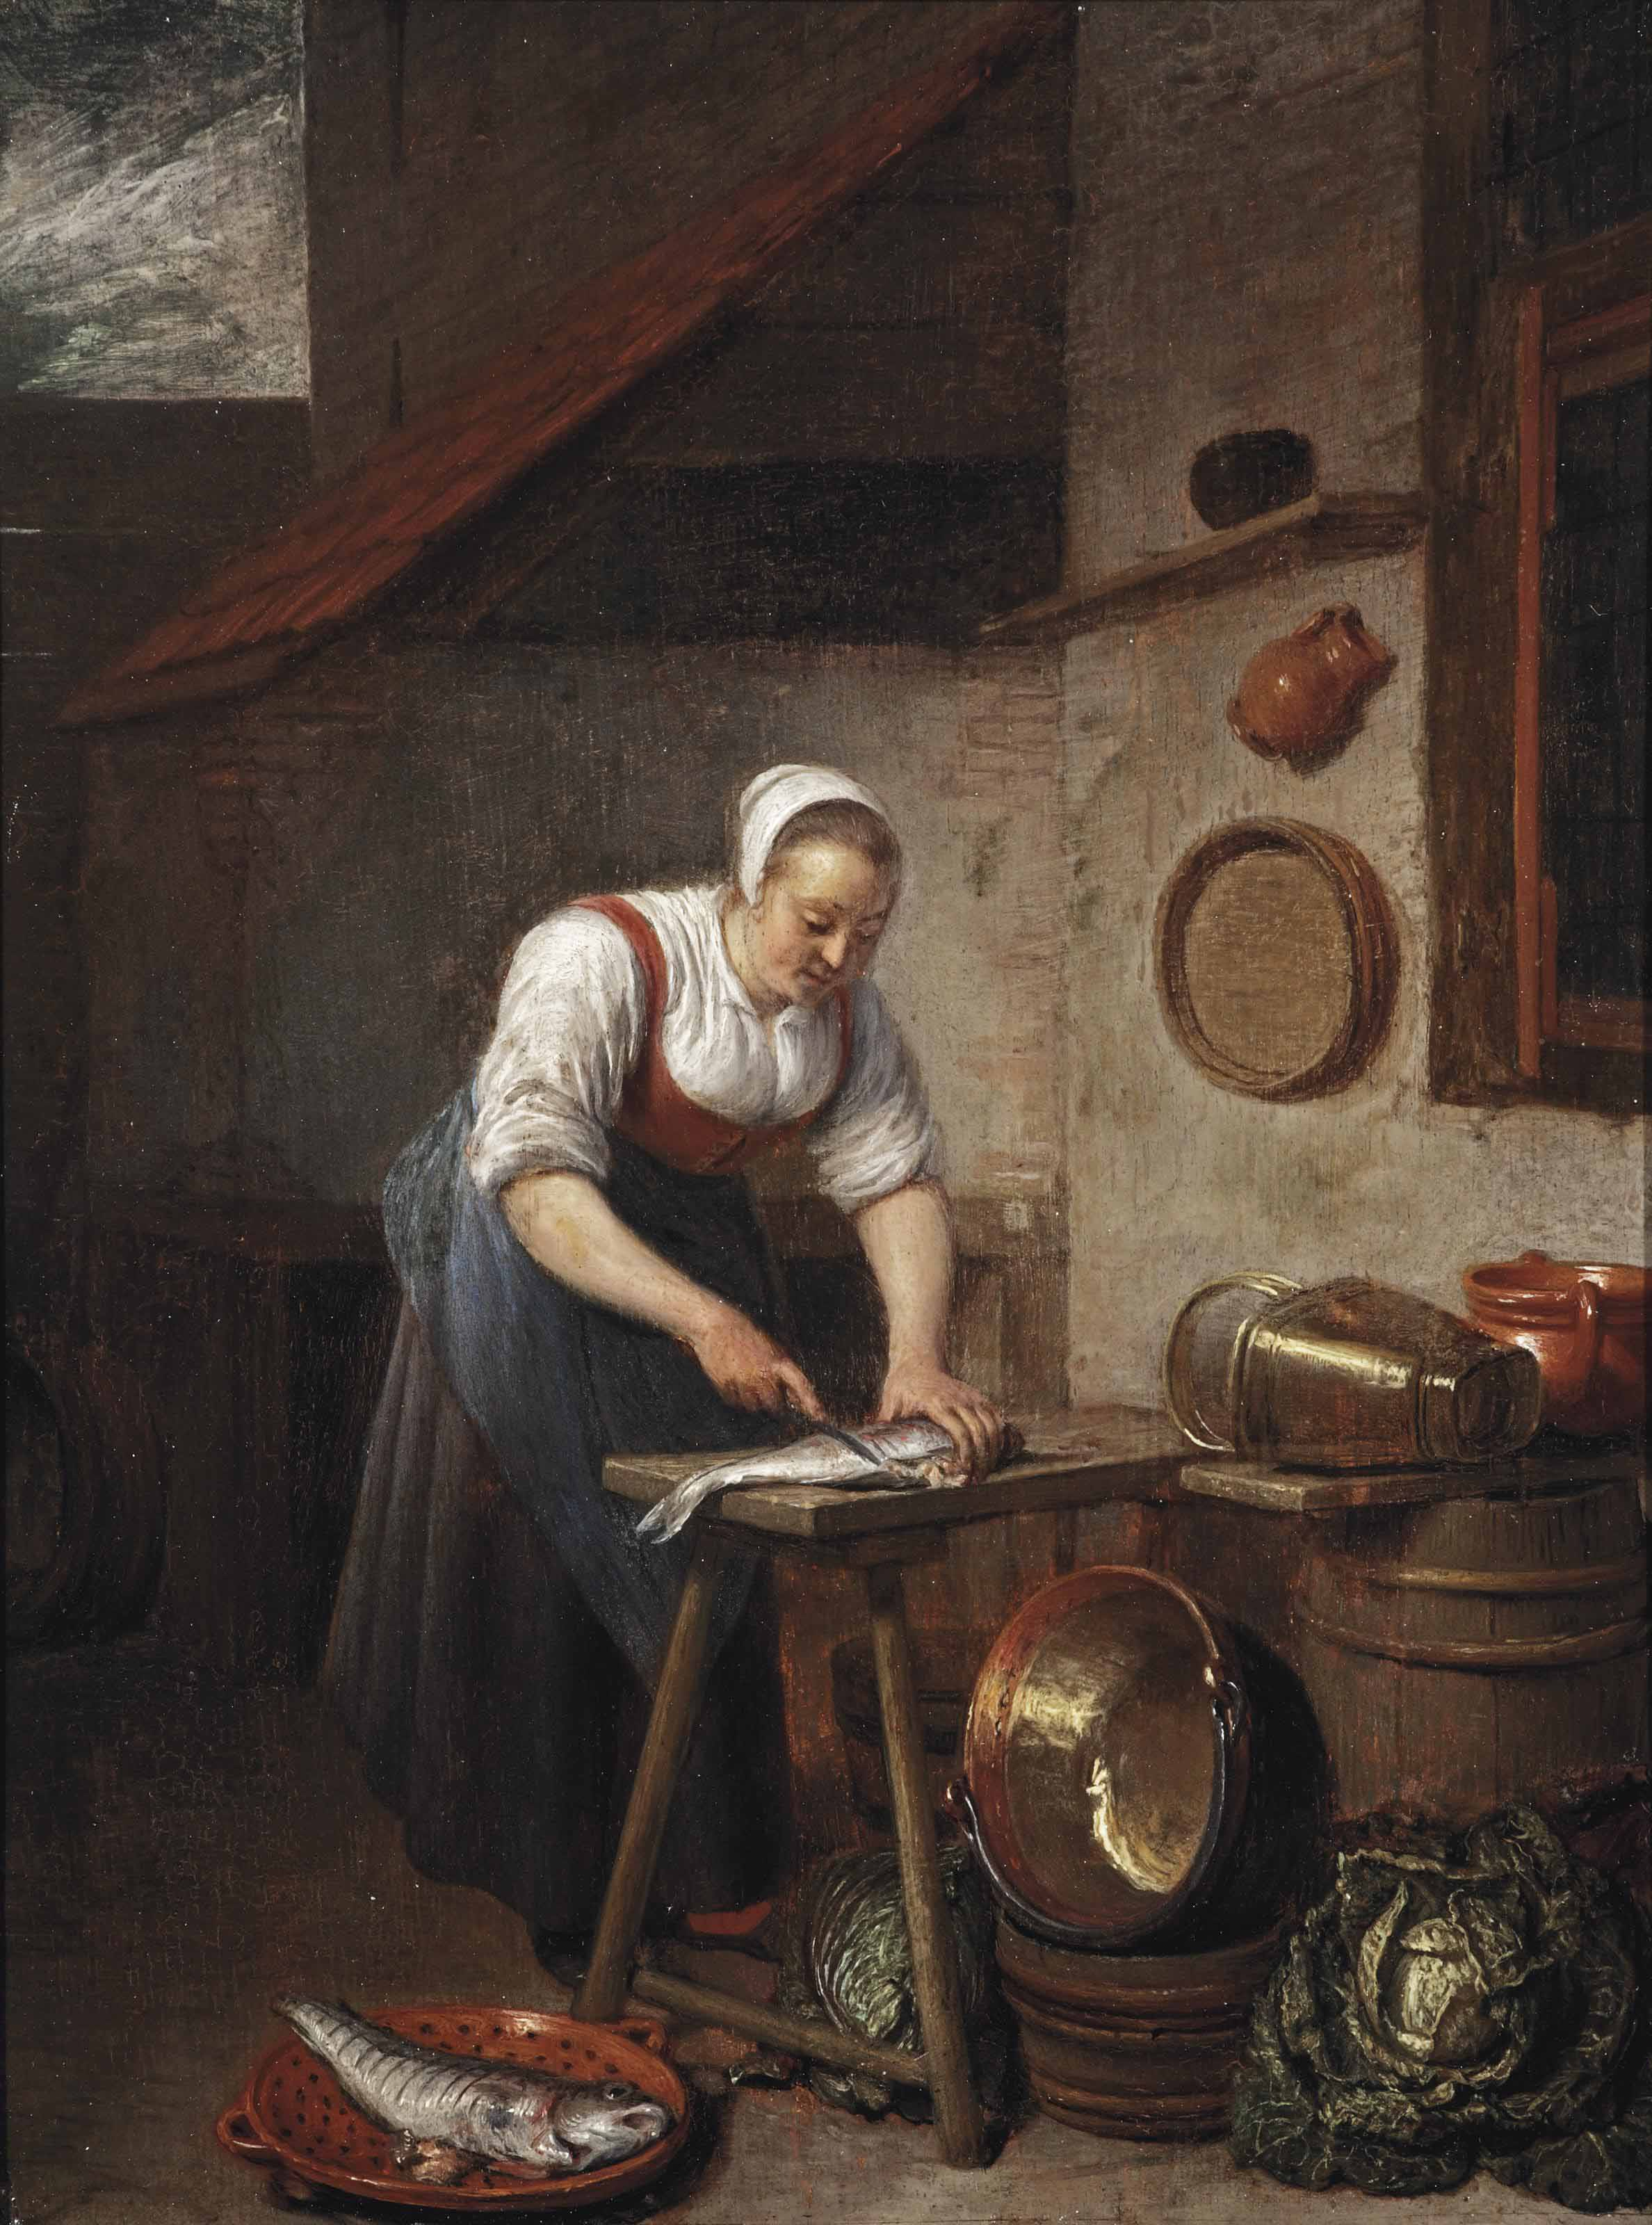 A maid standing by a table cleaning fish in a yard